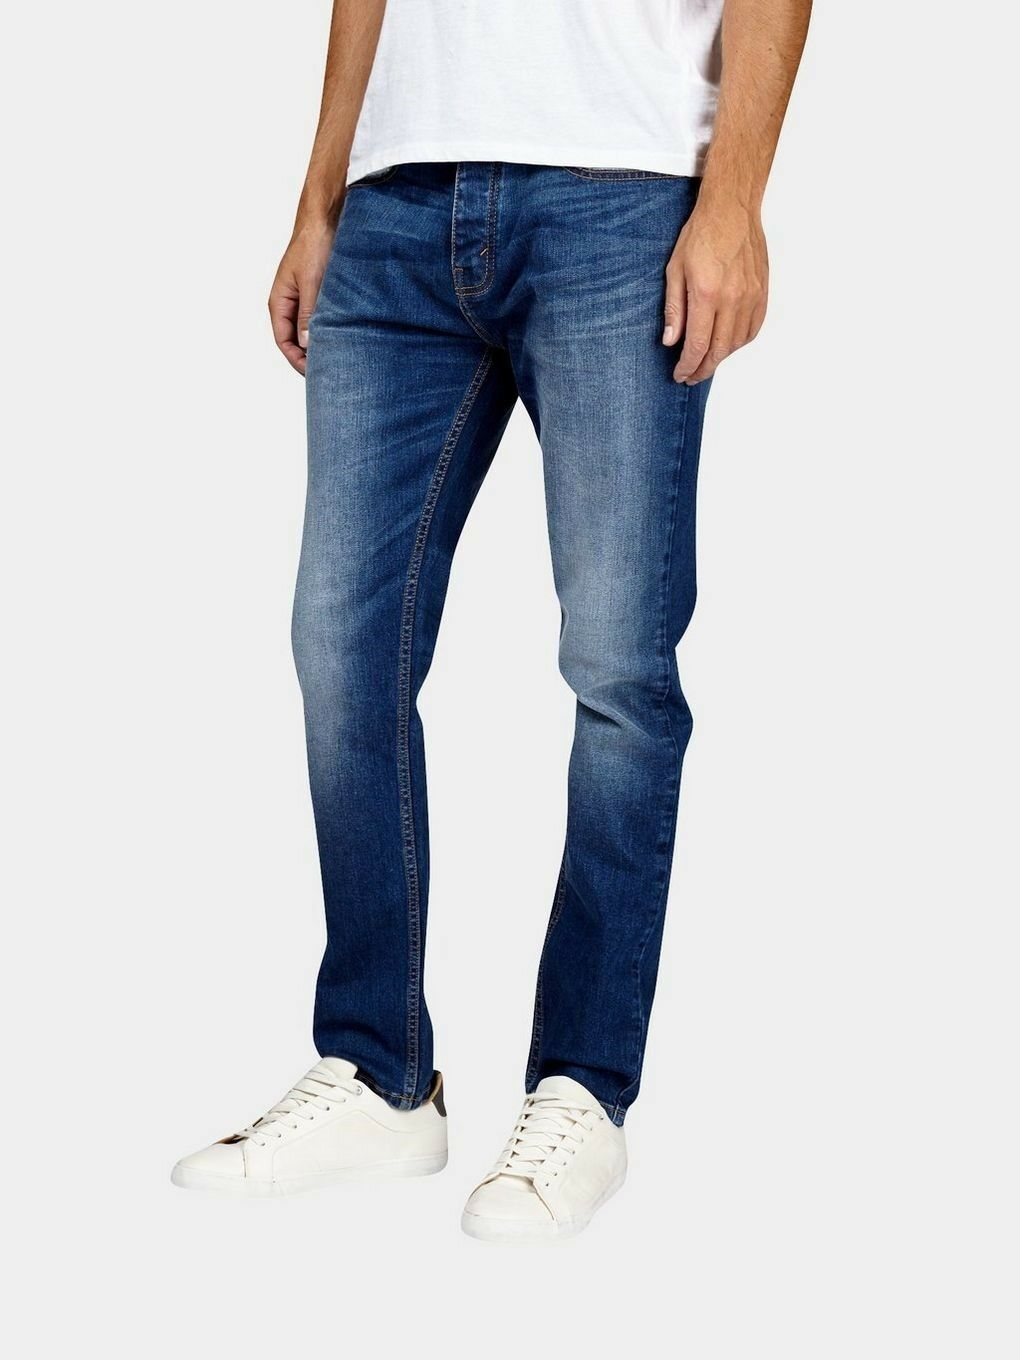 Burton Menswear - Mid bluee Wash Stretch Carter Tapered Fit Jeans, 32S, Brand New